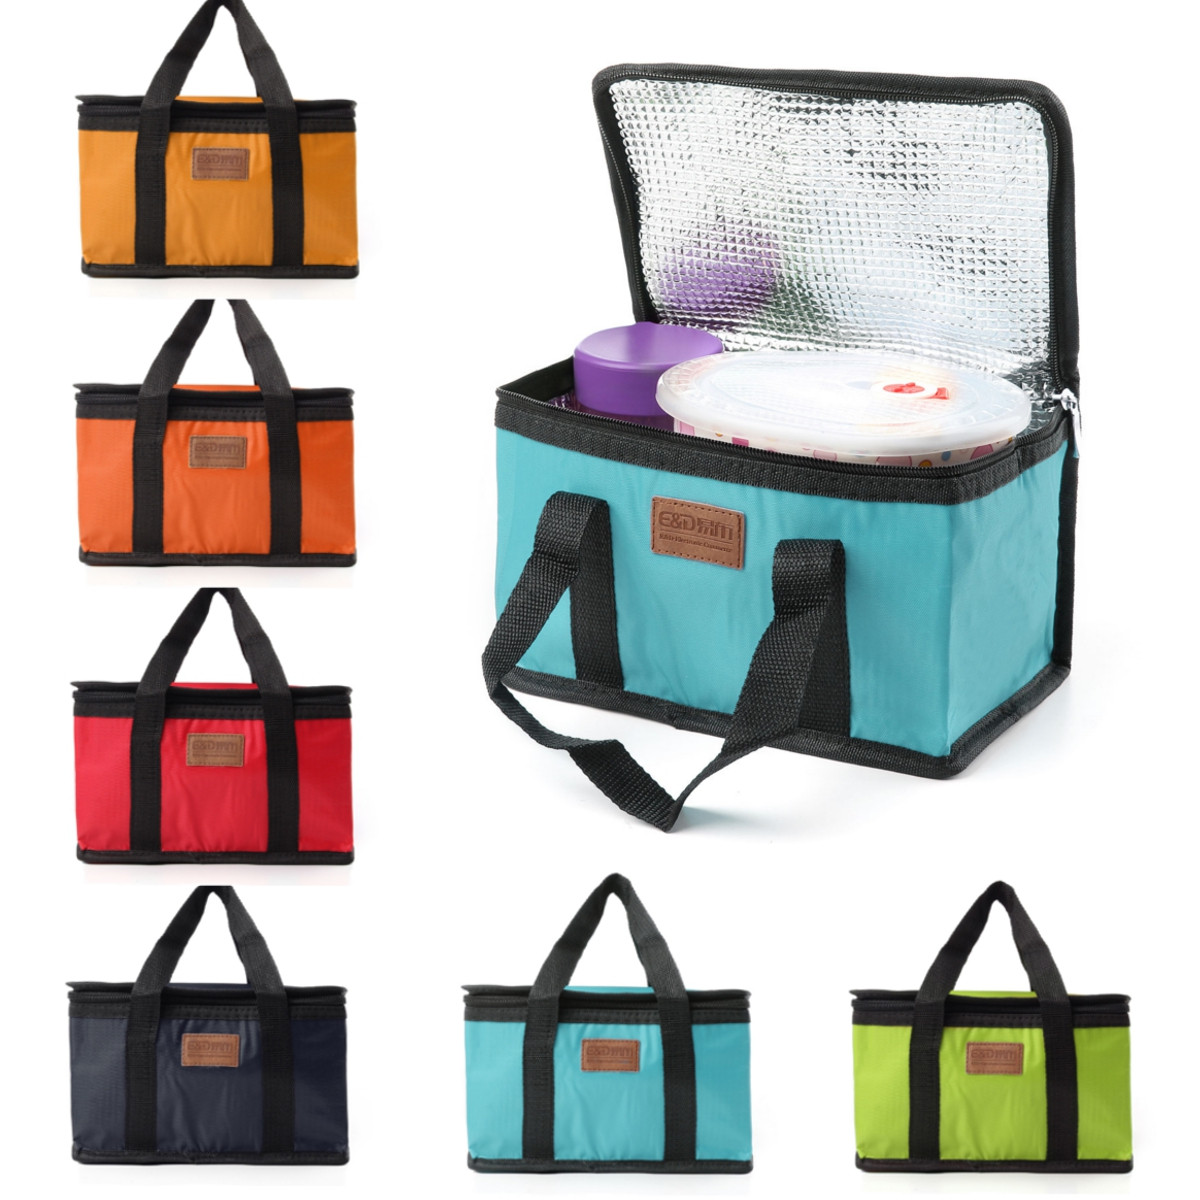 New Lunch Bag Portable Waterproof Thermal Cooler Insulated Lunch Box Storage Picnic Bag Pouch